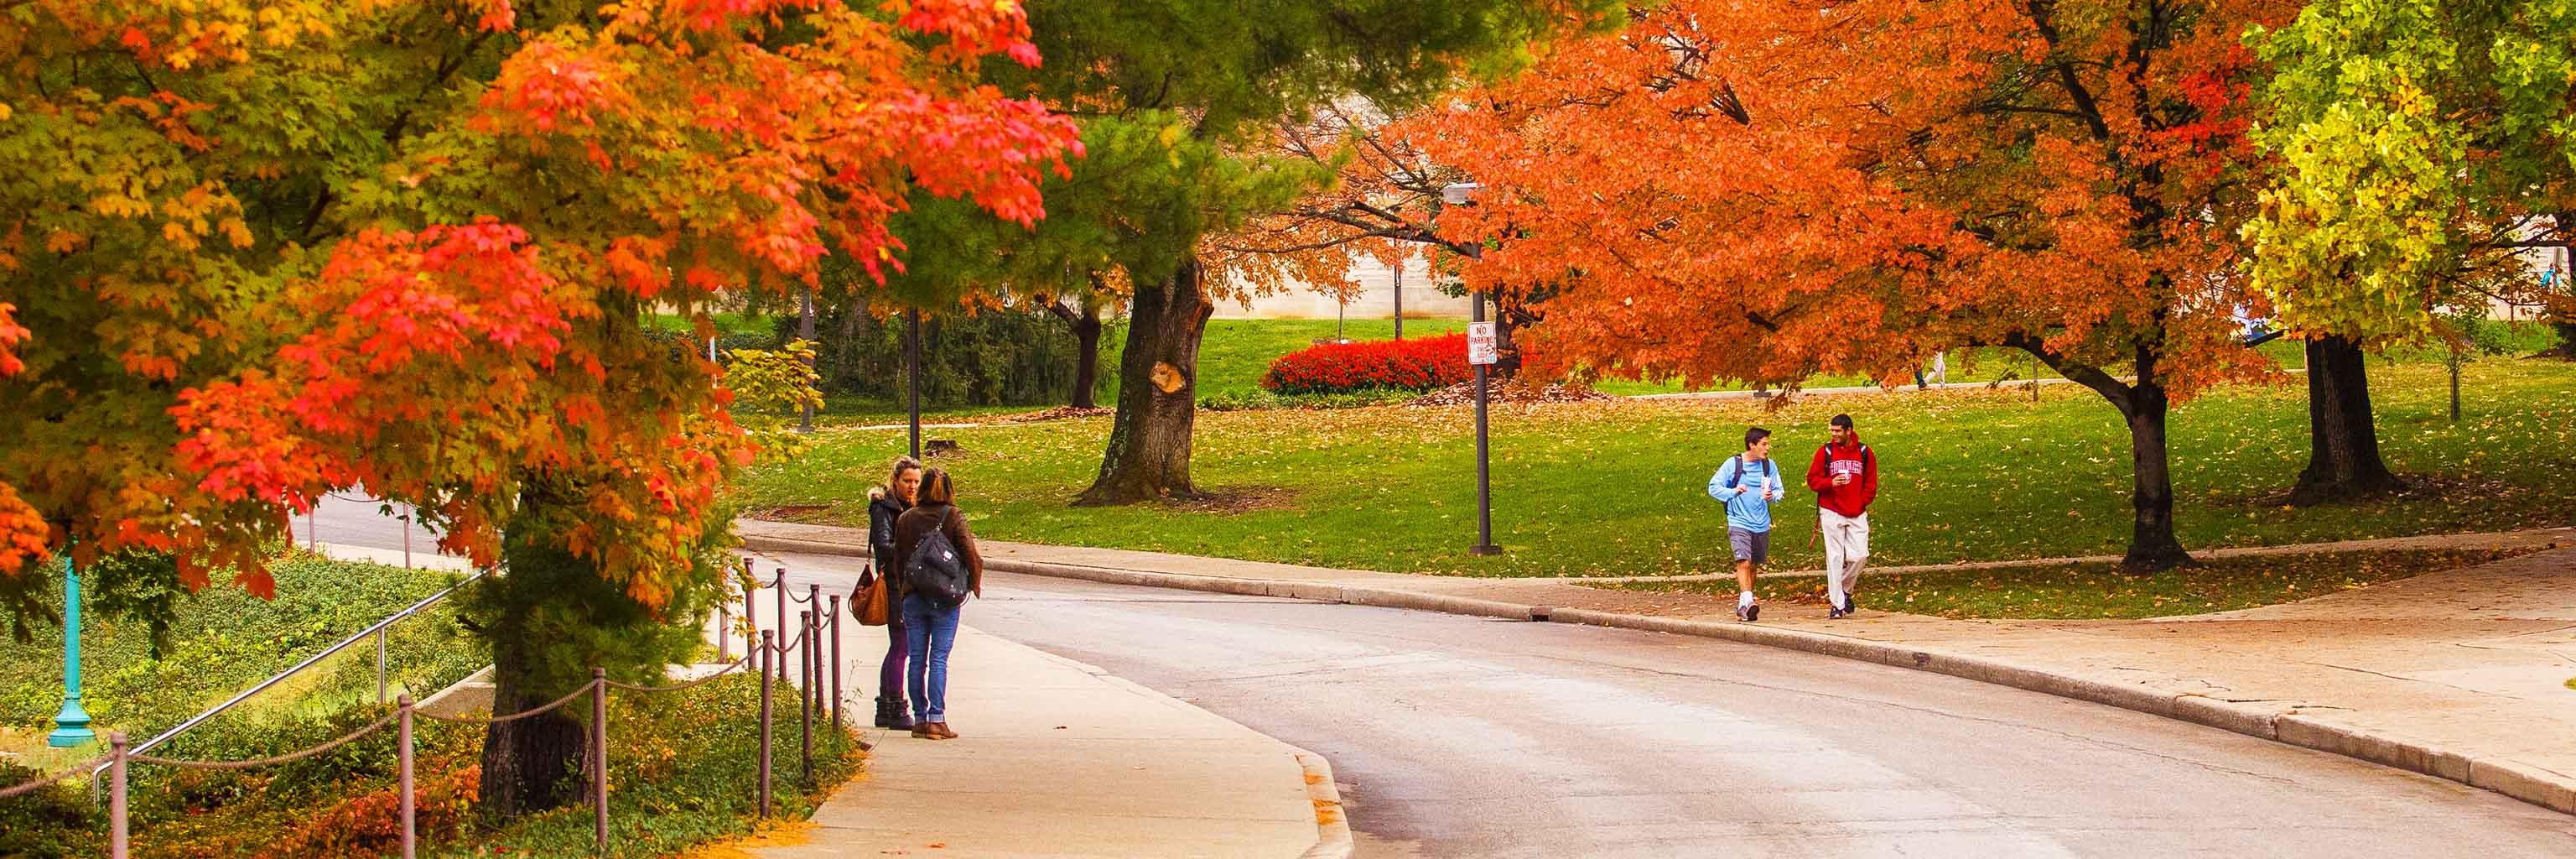 Students walk on campus on an autumn day.